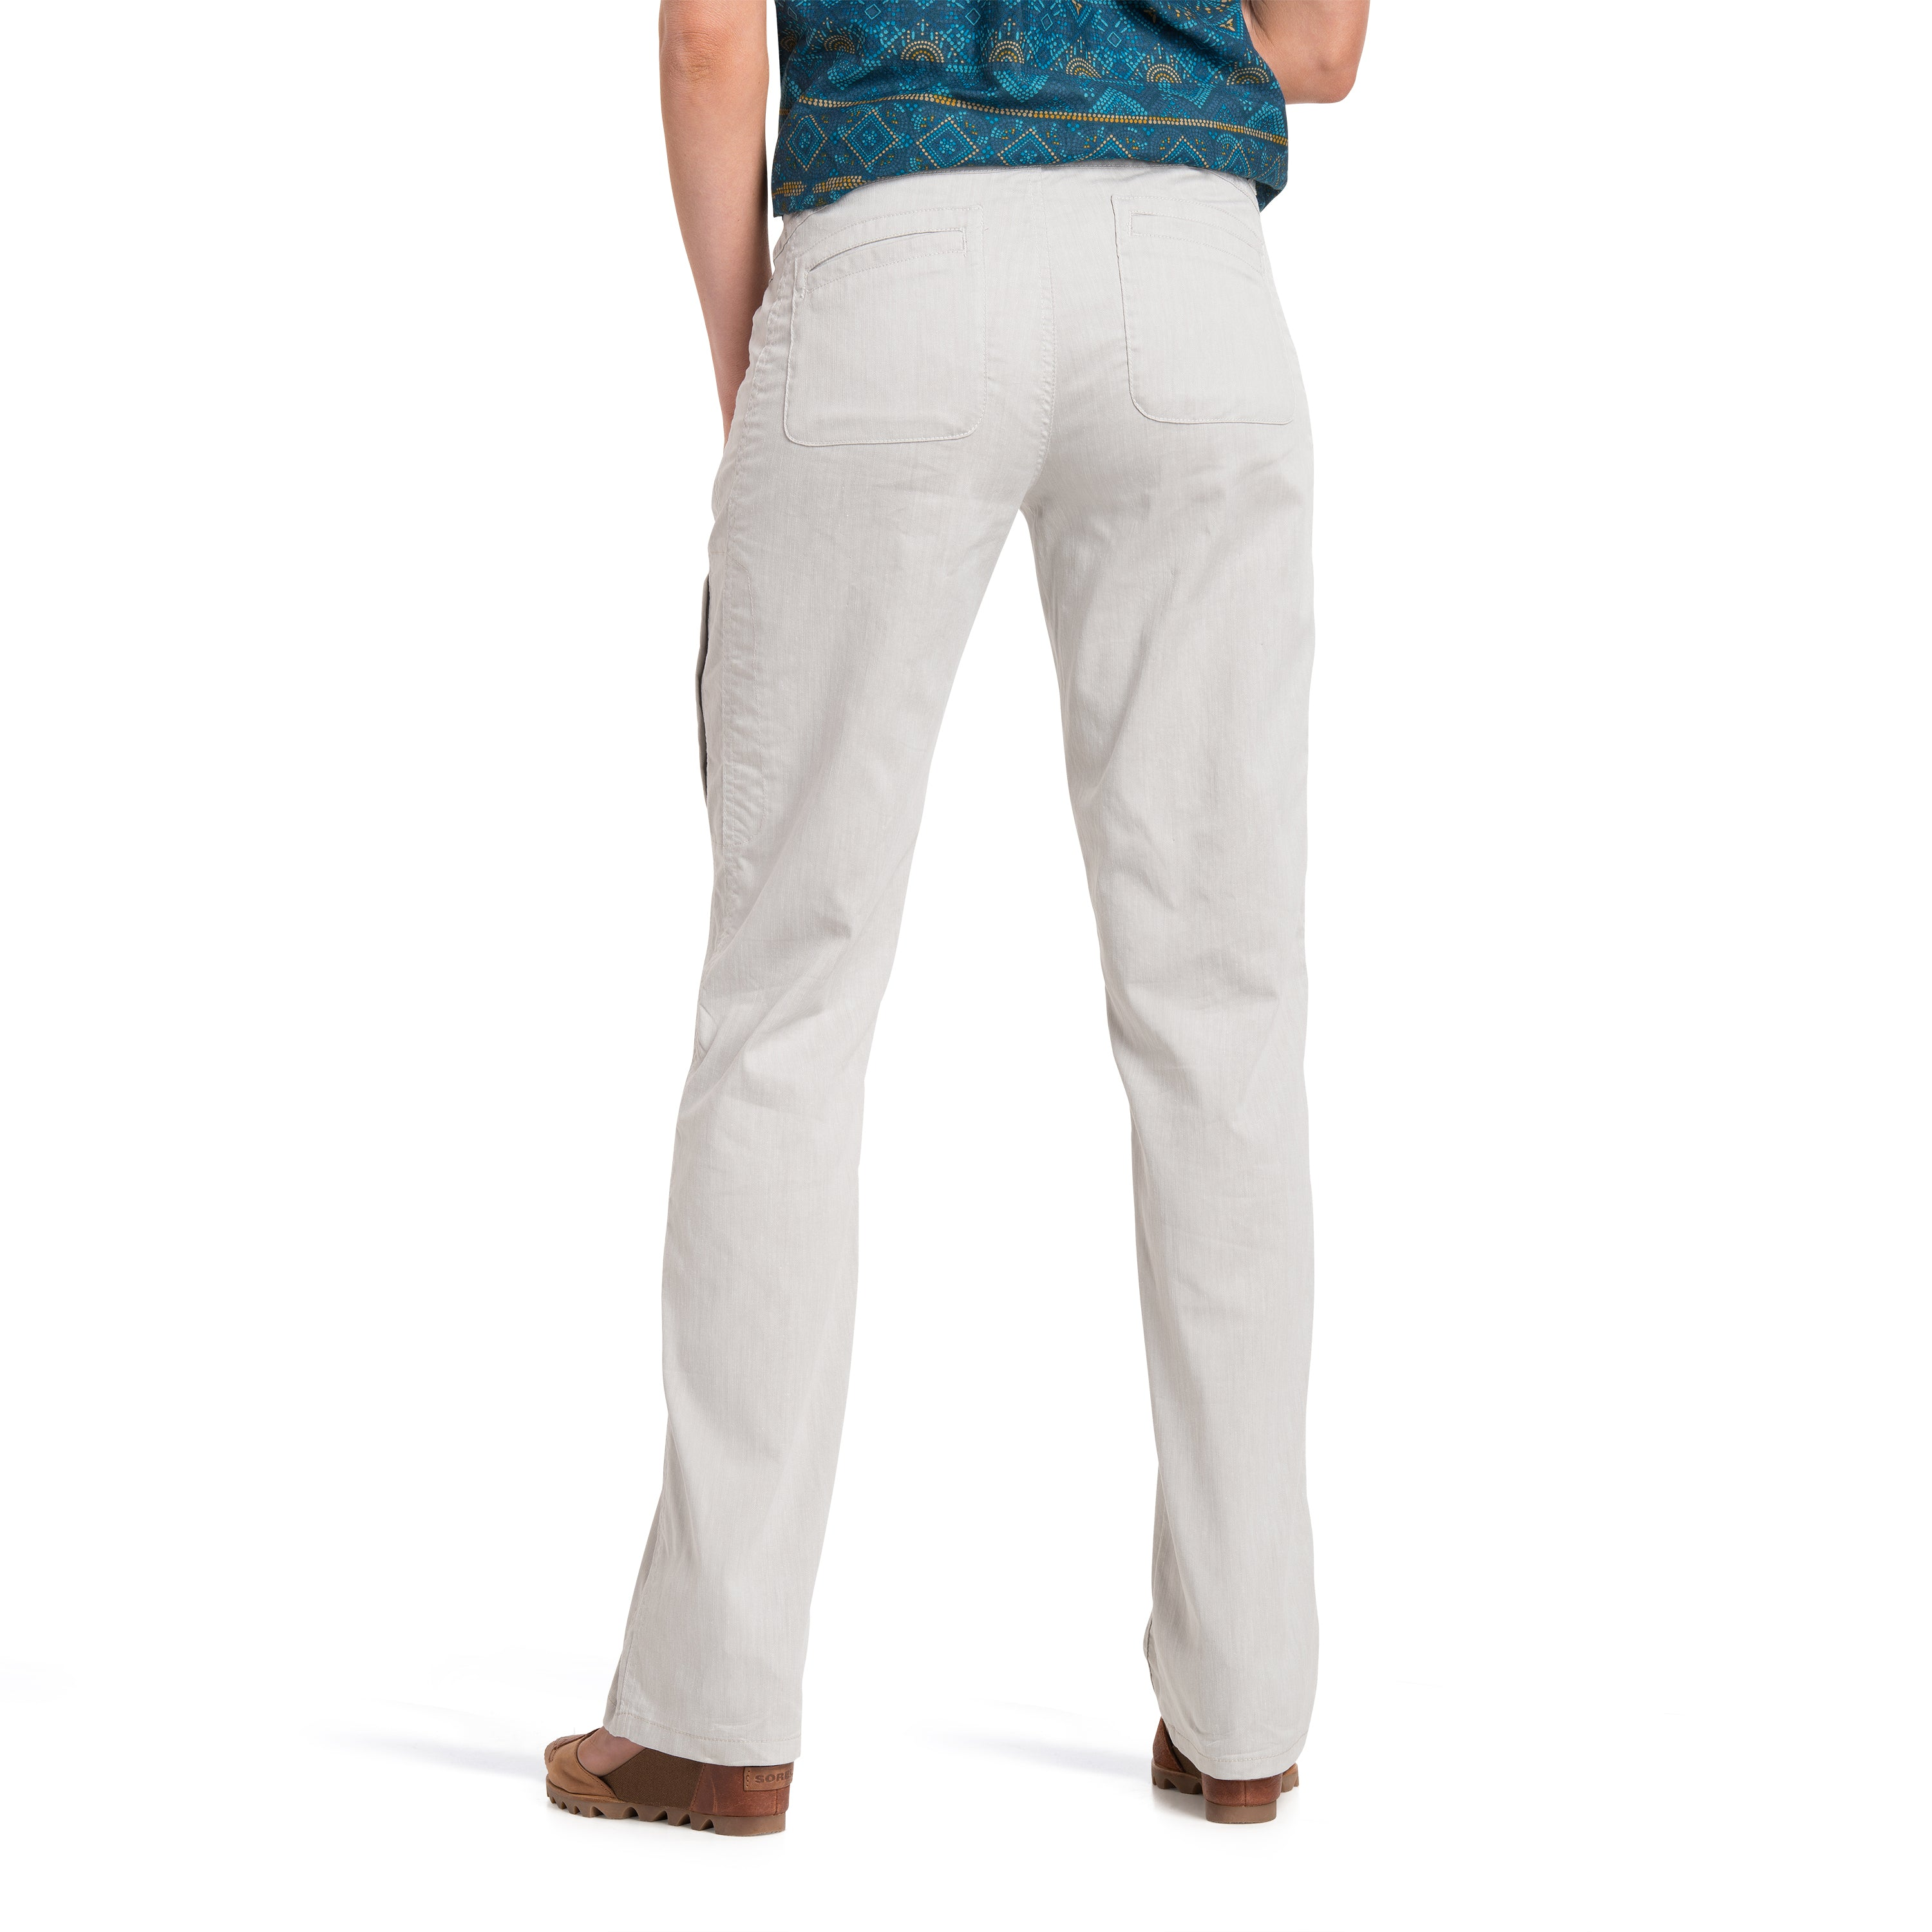 770bb9c40a Kuhl Cabo Pant - Women's - Outdoors Oriented